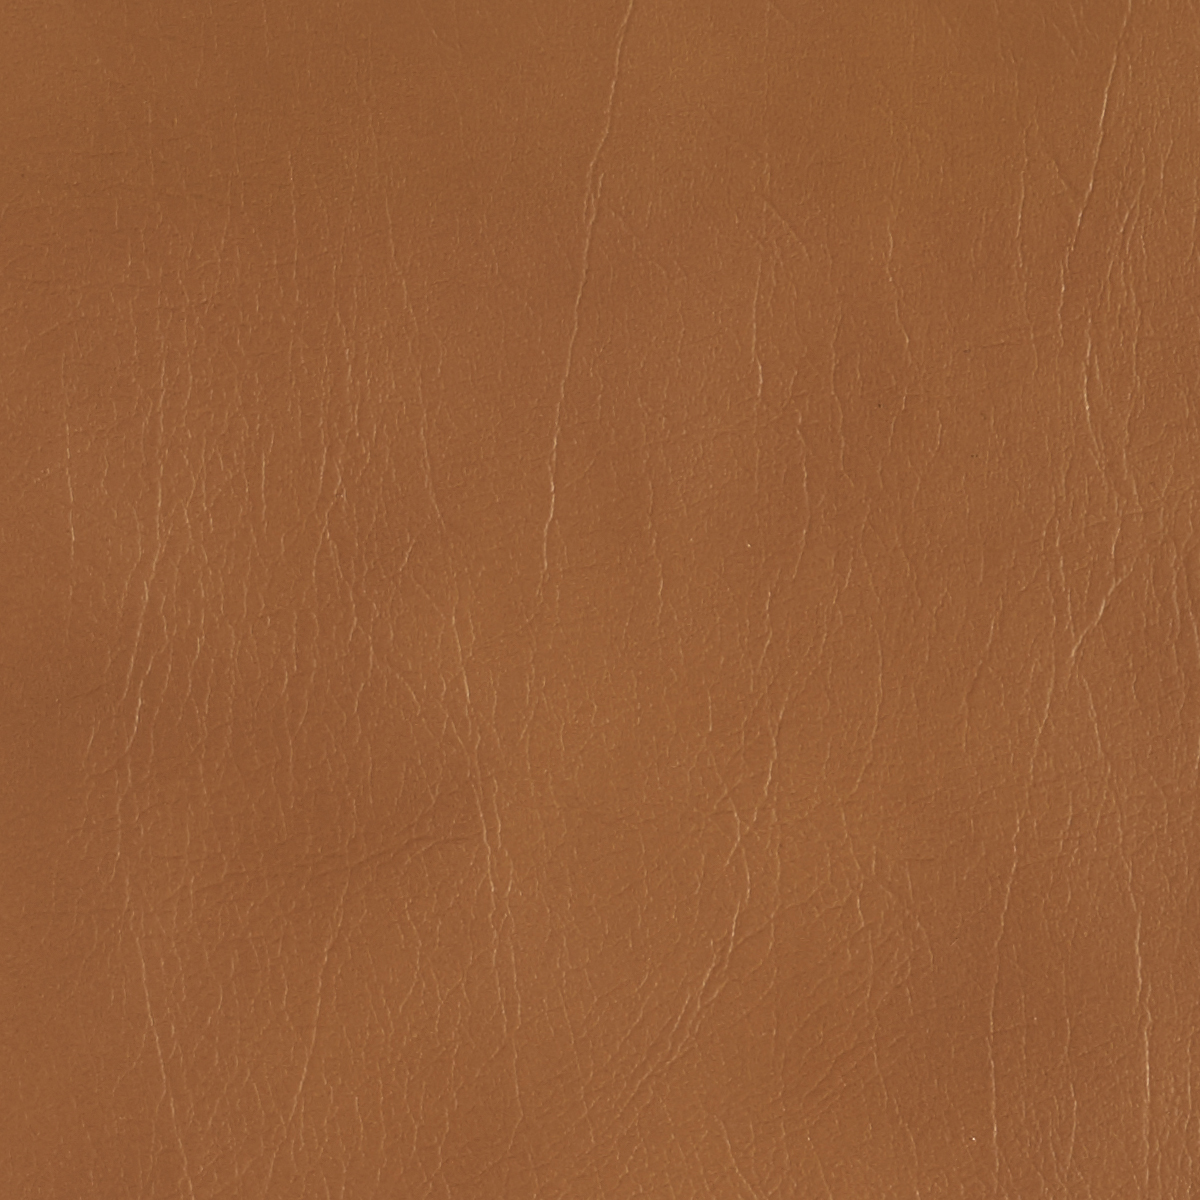 5626 Toffee - Formica